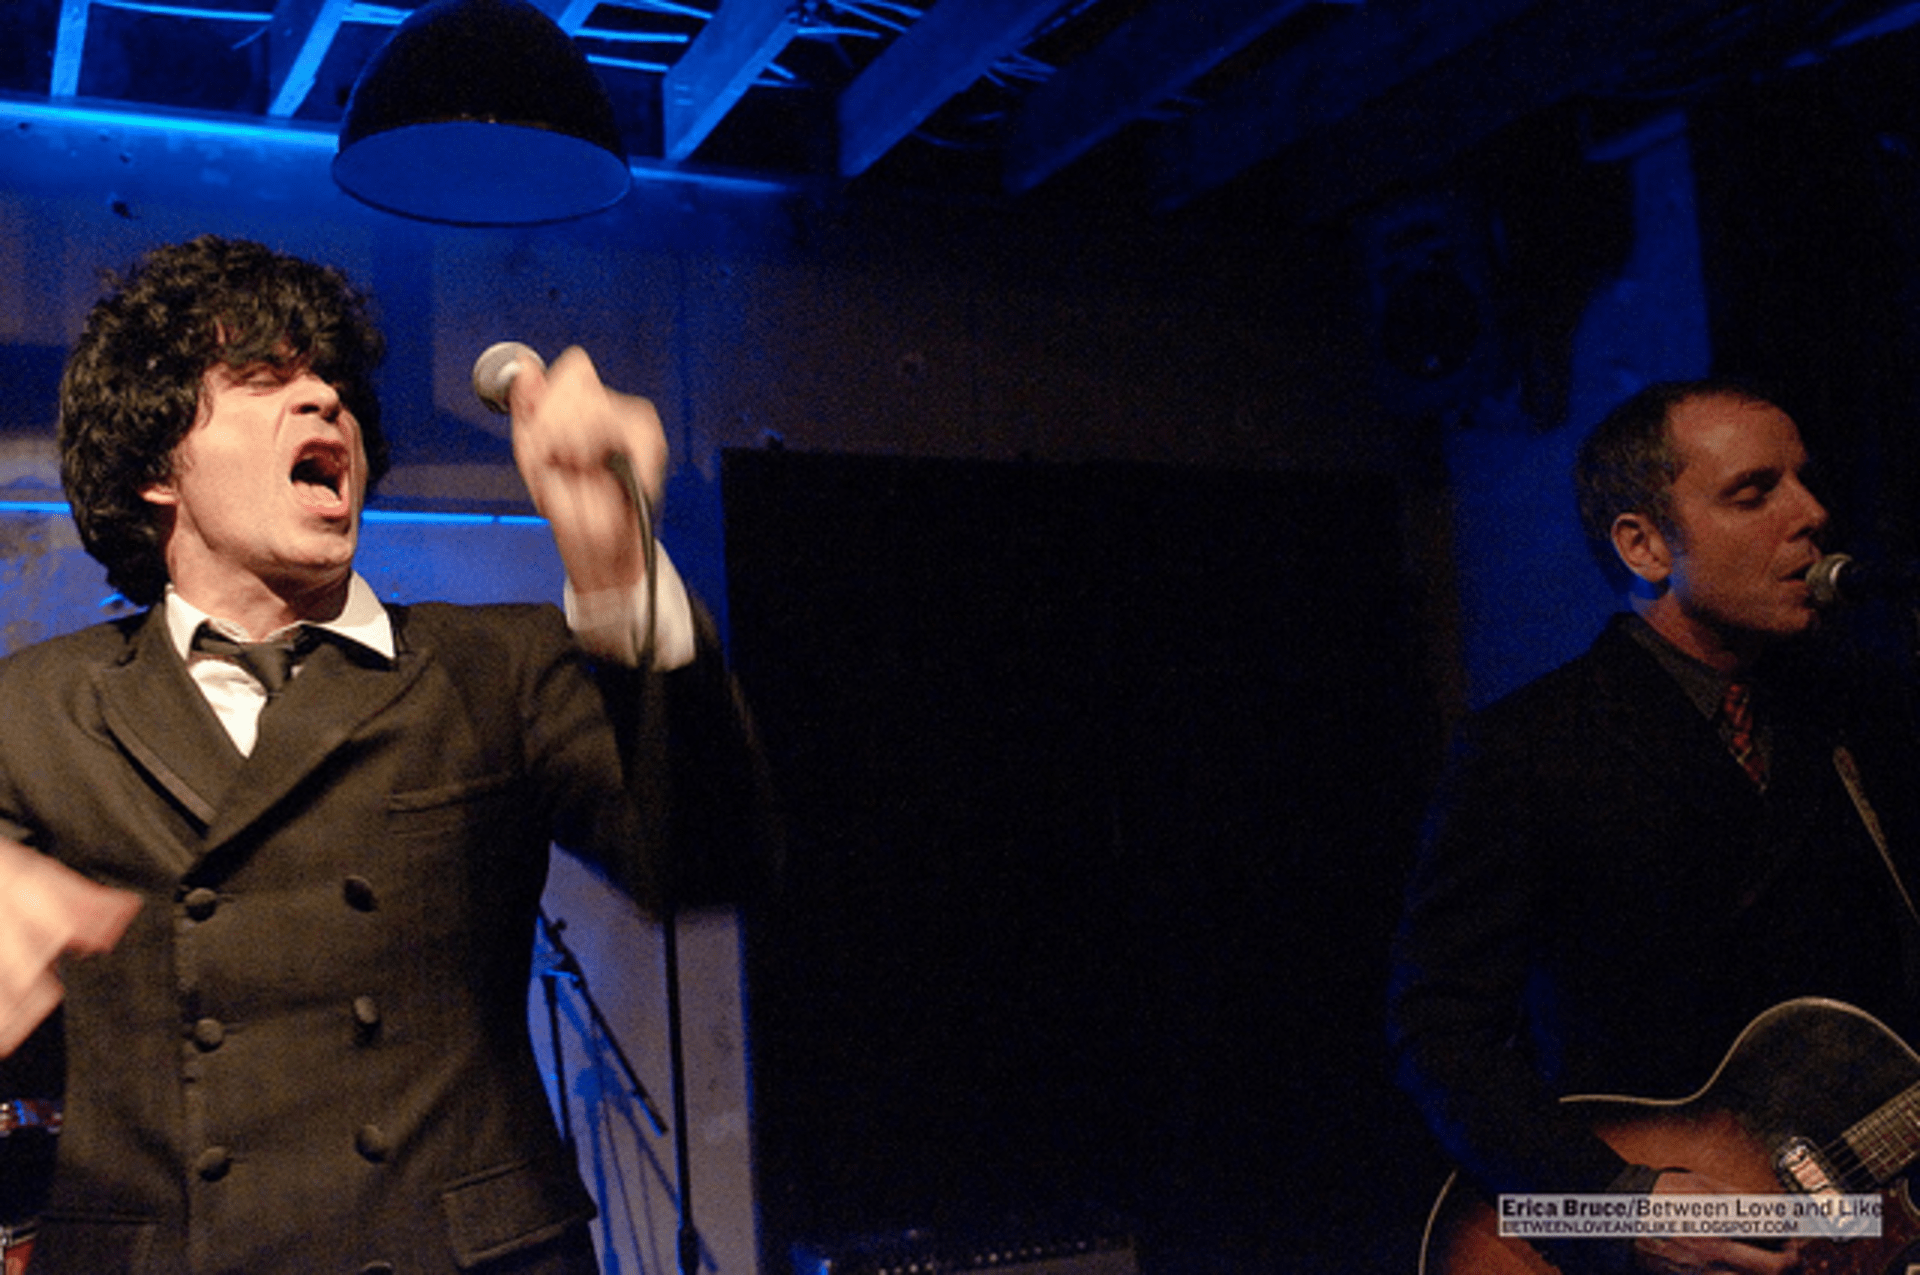 Ian Svenonius and James Canty of Garbage Zone